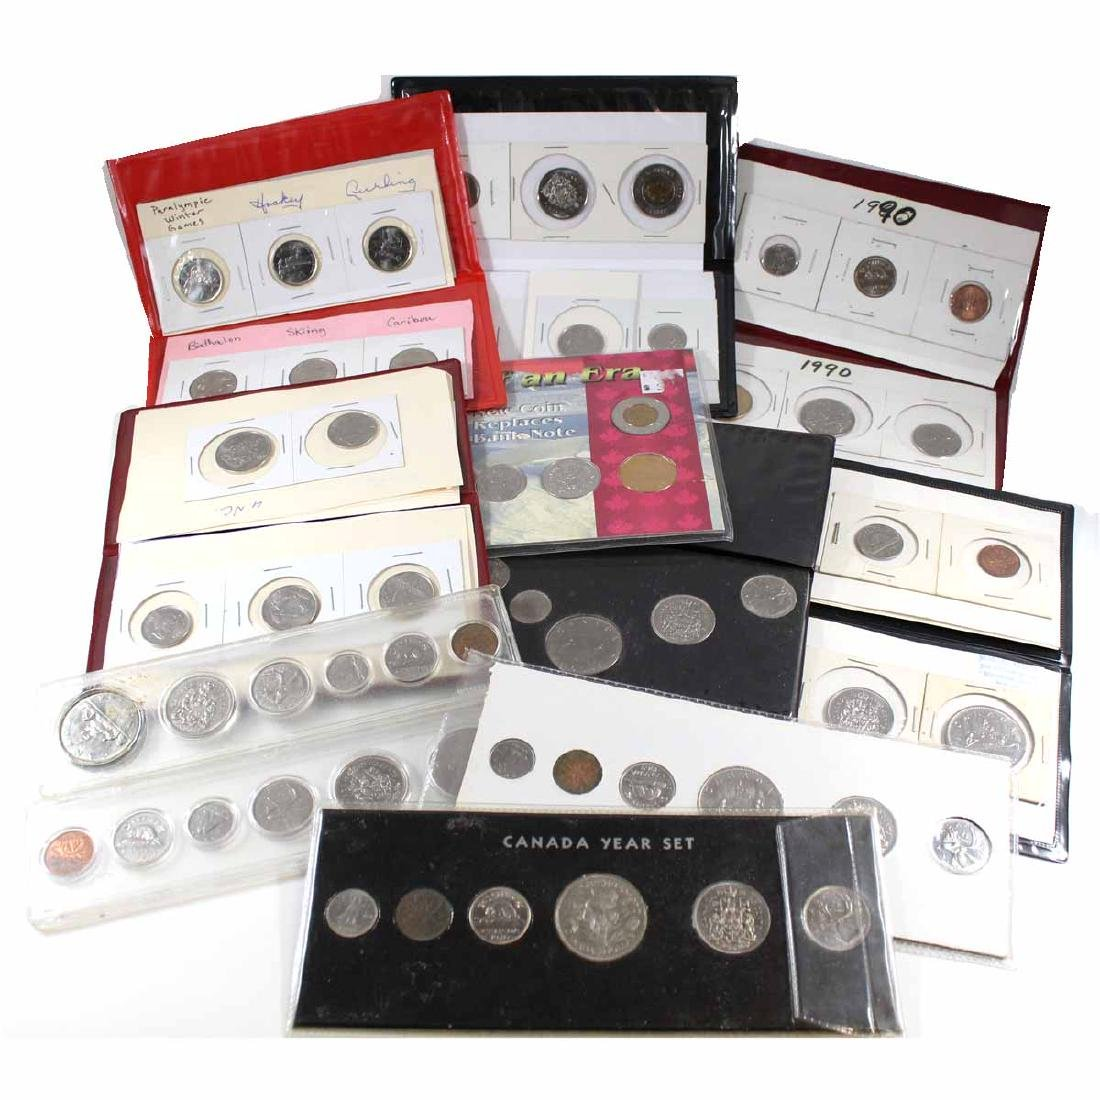 Lot of 1969-2007 Canada Year Set Collection. You will